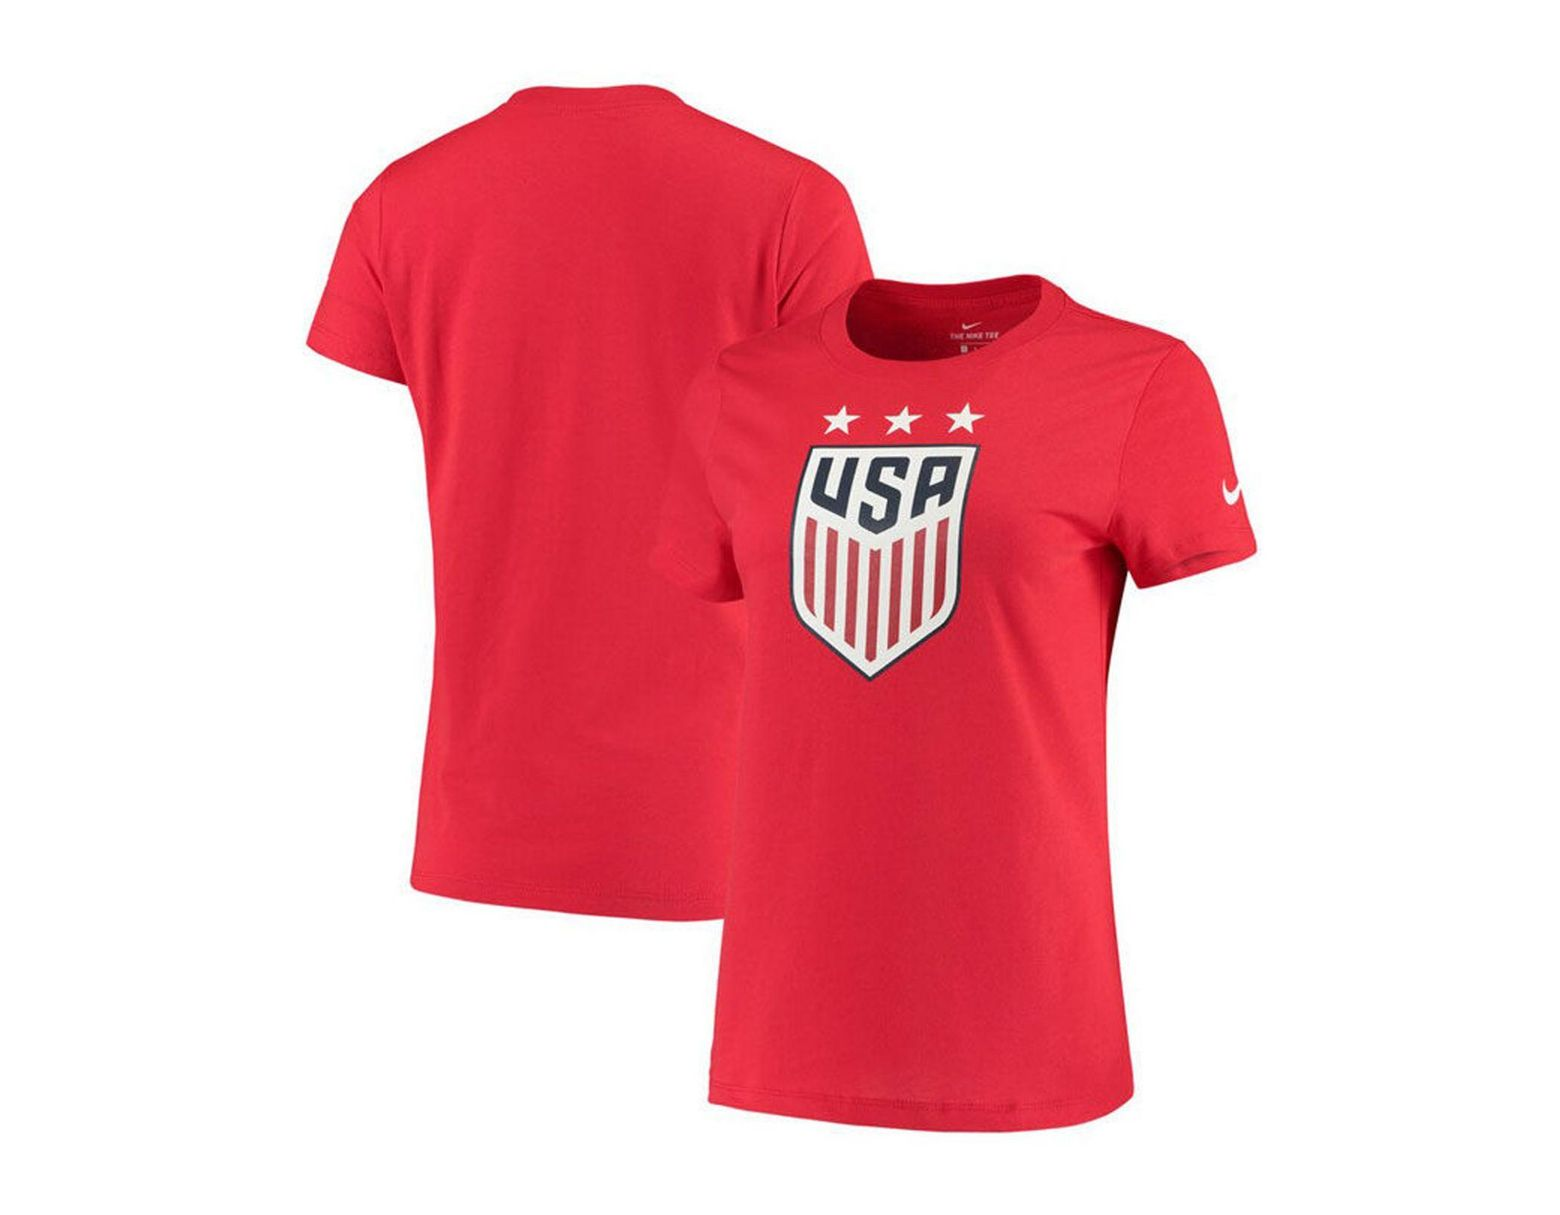 f5b55fc7dc3 Nike Usa National Team Evergreen Crest T-shirt in Red - Lyst